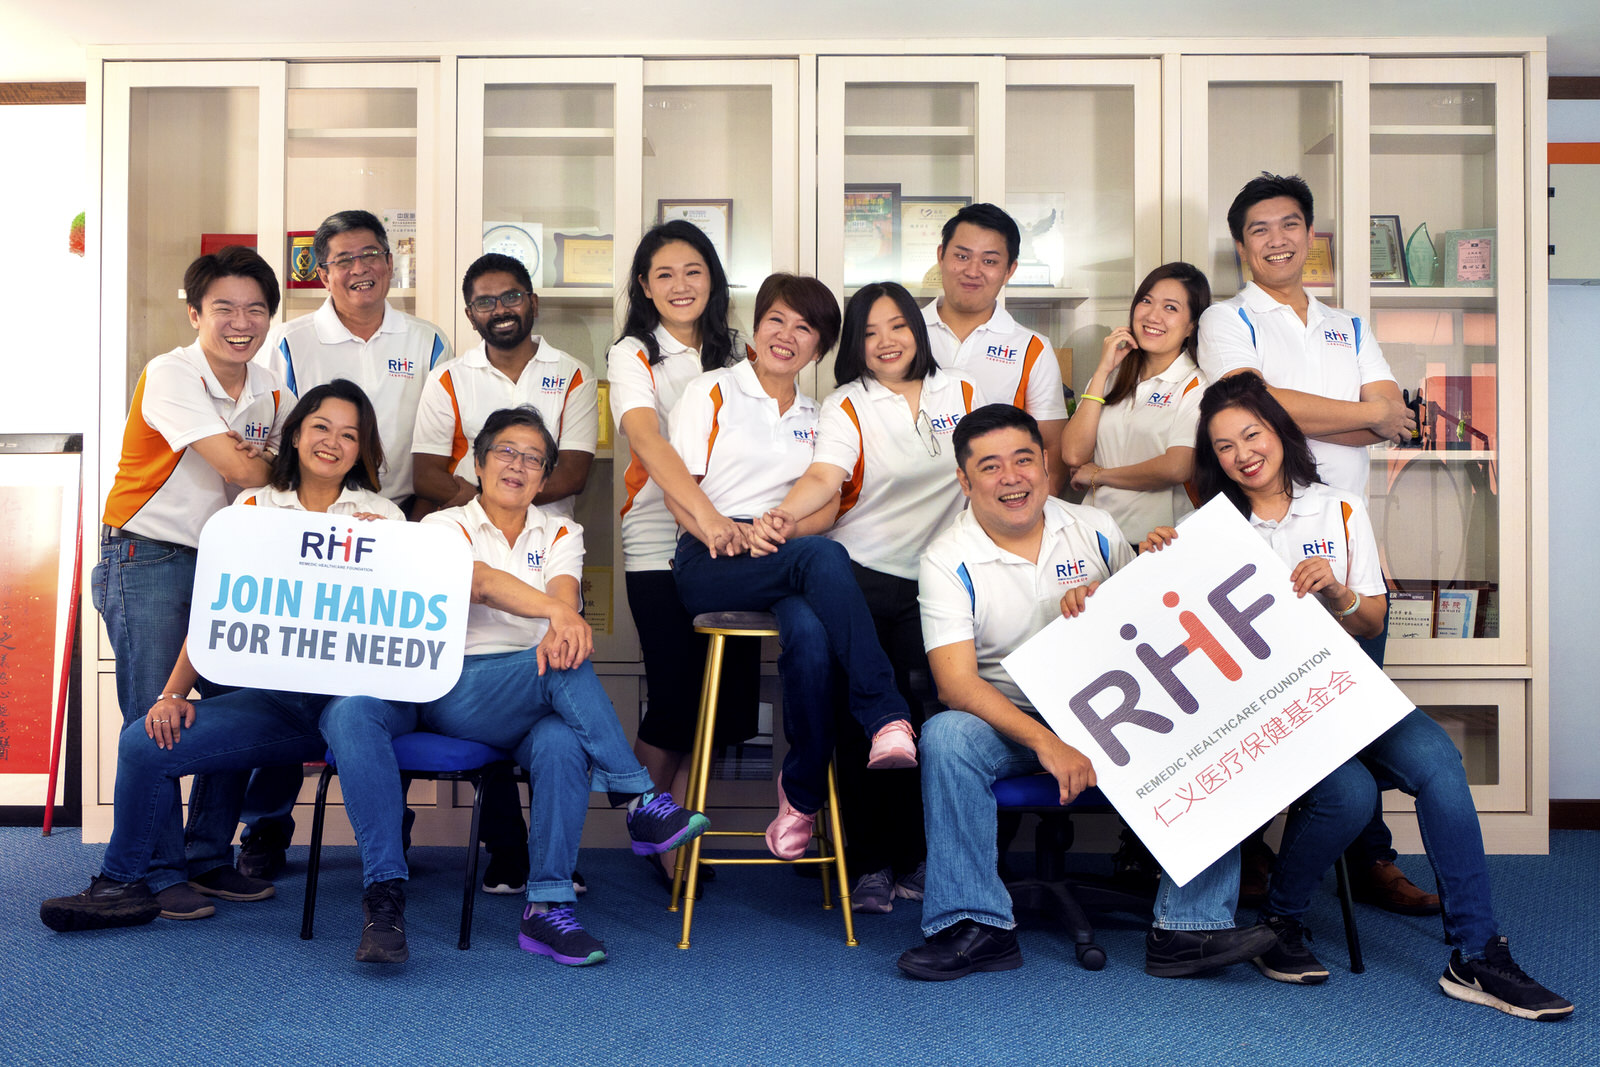 RHF GROUP PHOTO _2